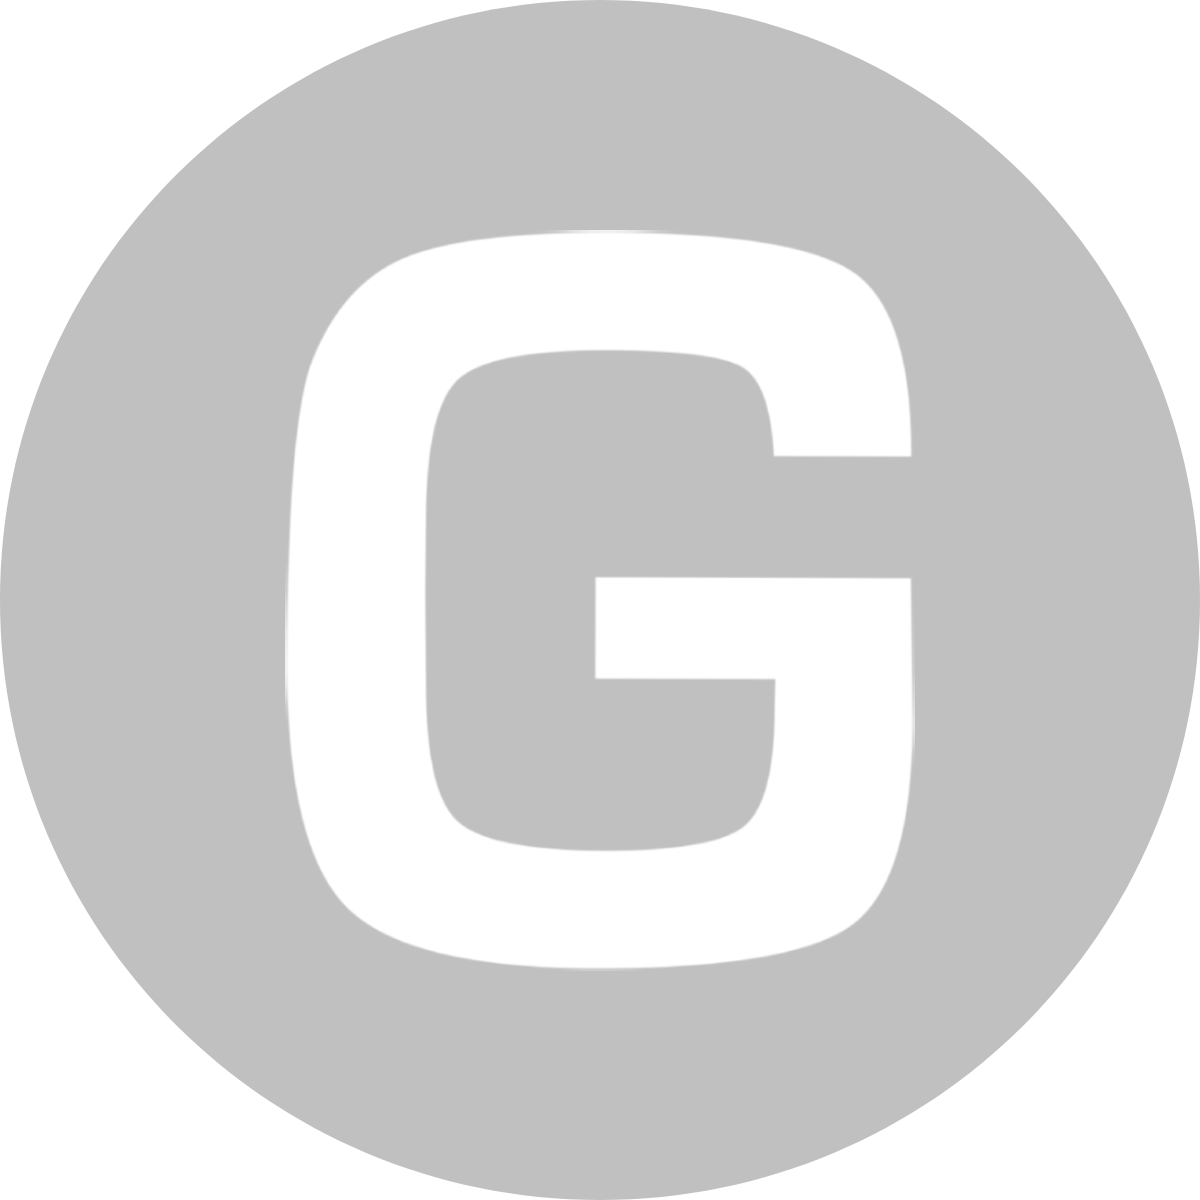 DEMO TaylorMade Driver M5